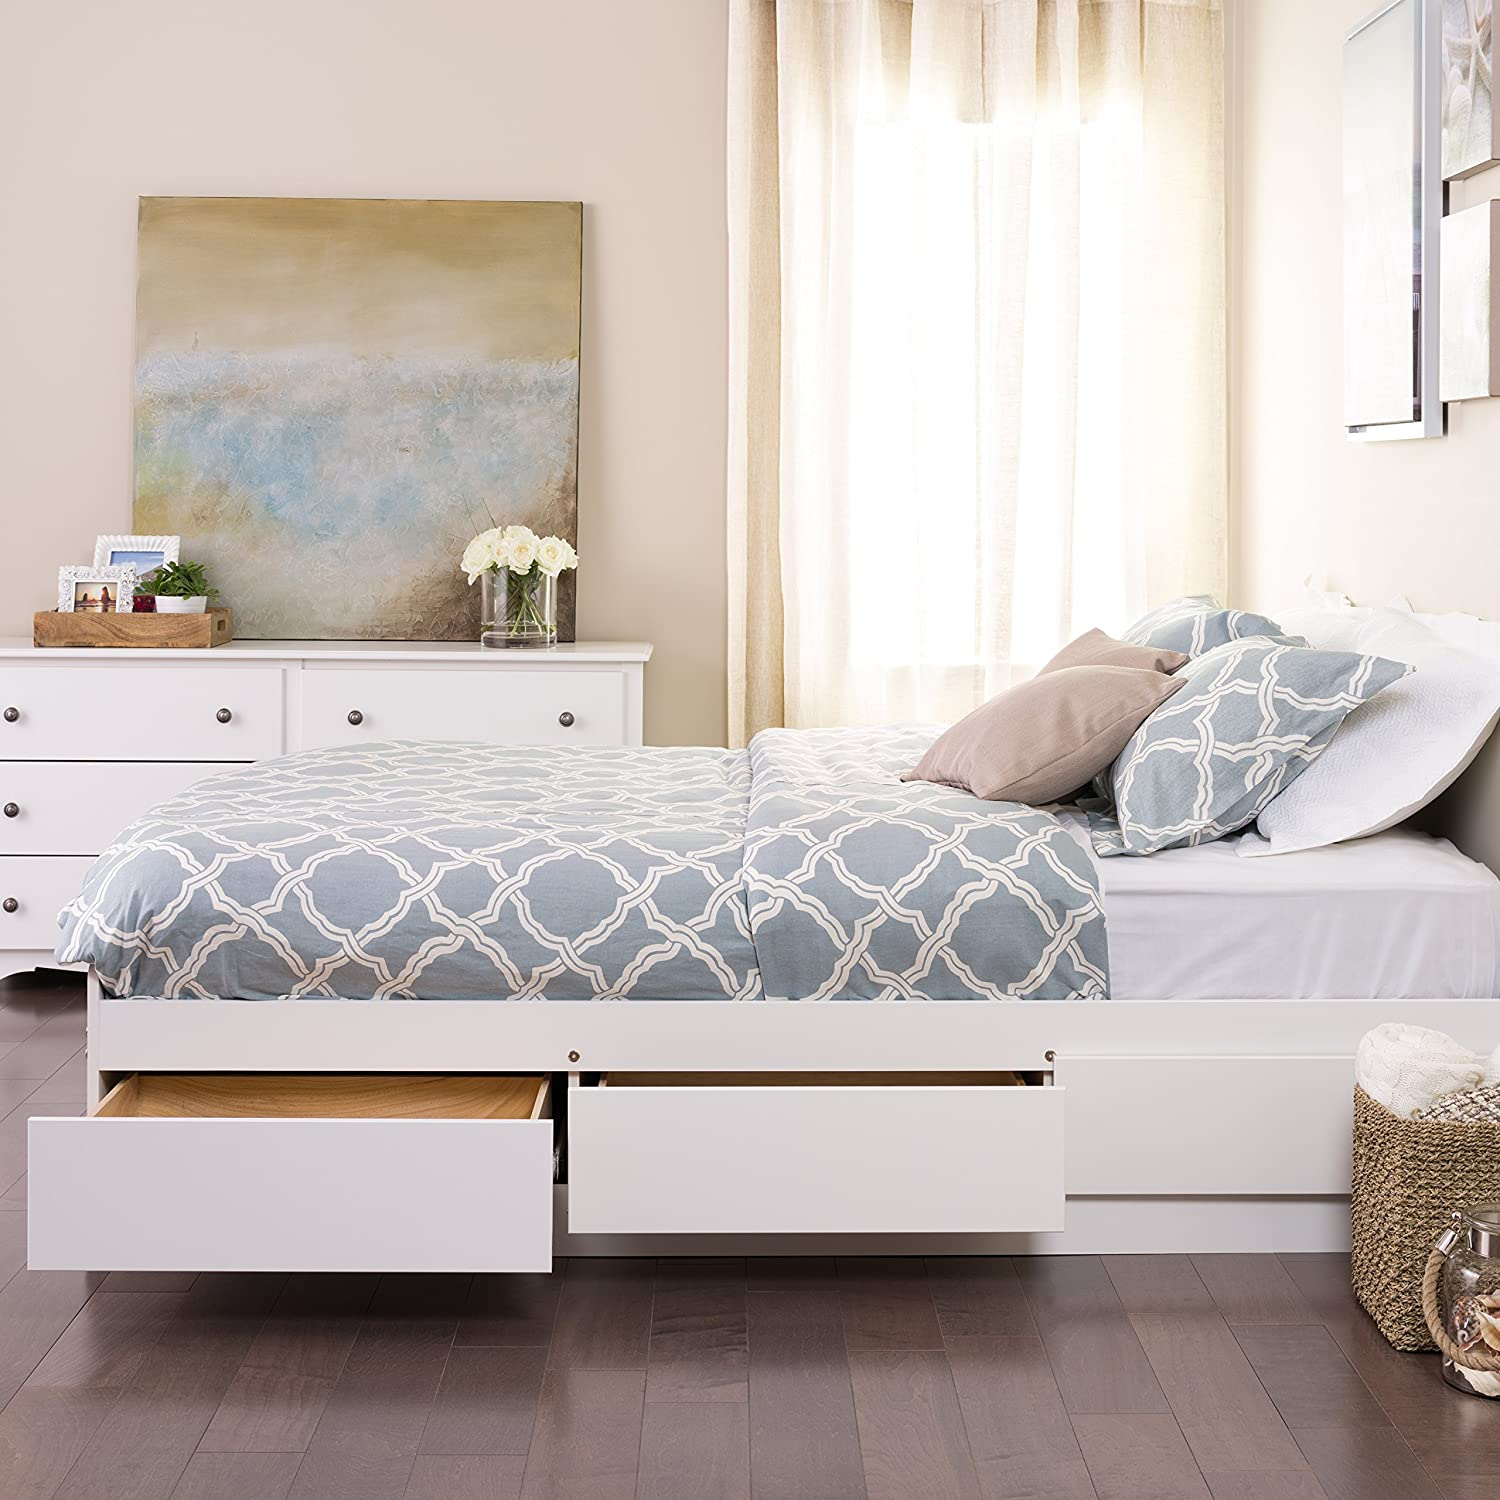 value queen beds coaster bed miranda products item dovetail with storage threshold width height mirandaqueen drawers trim